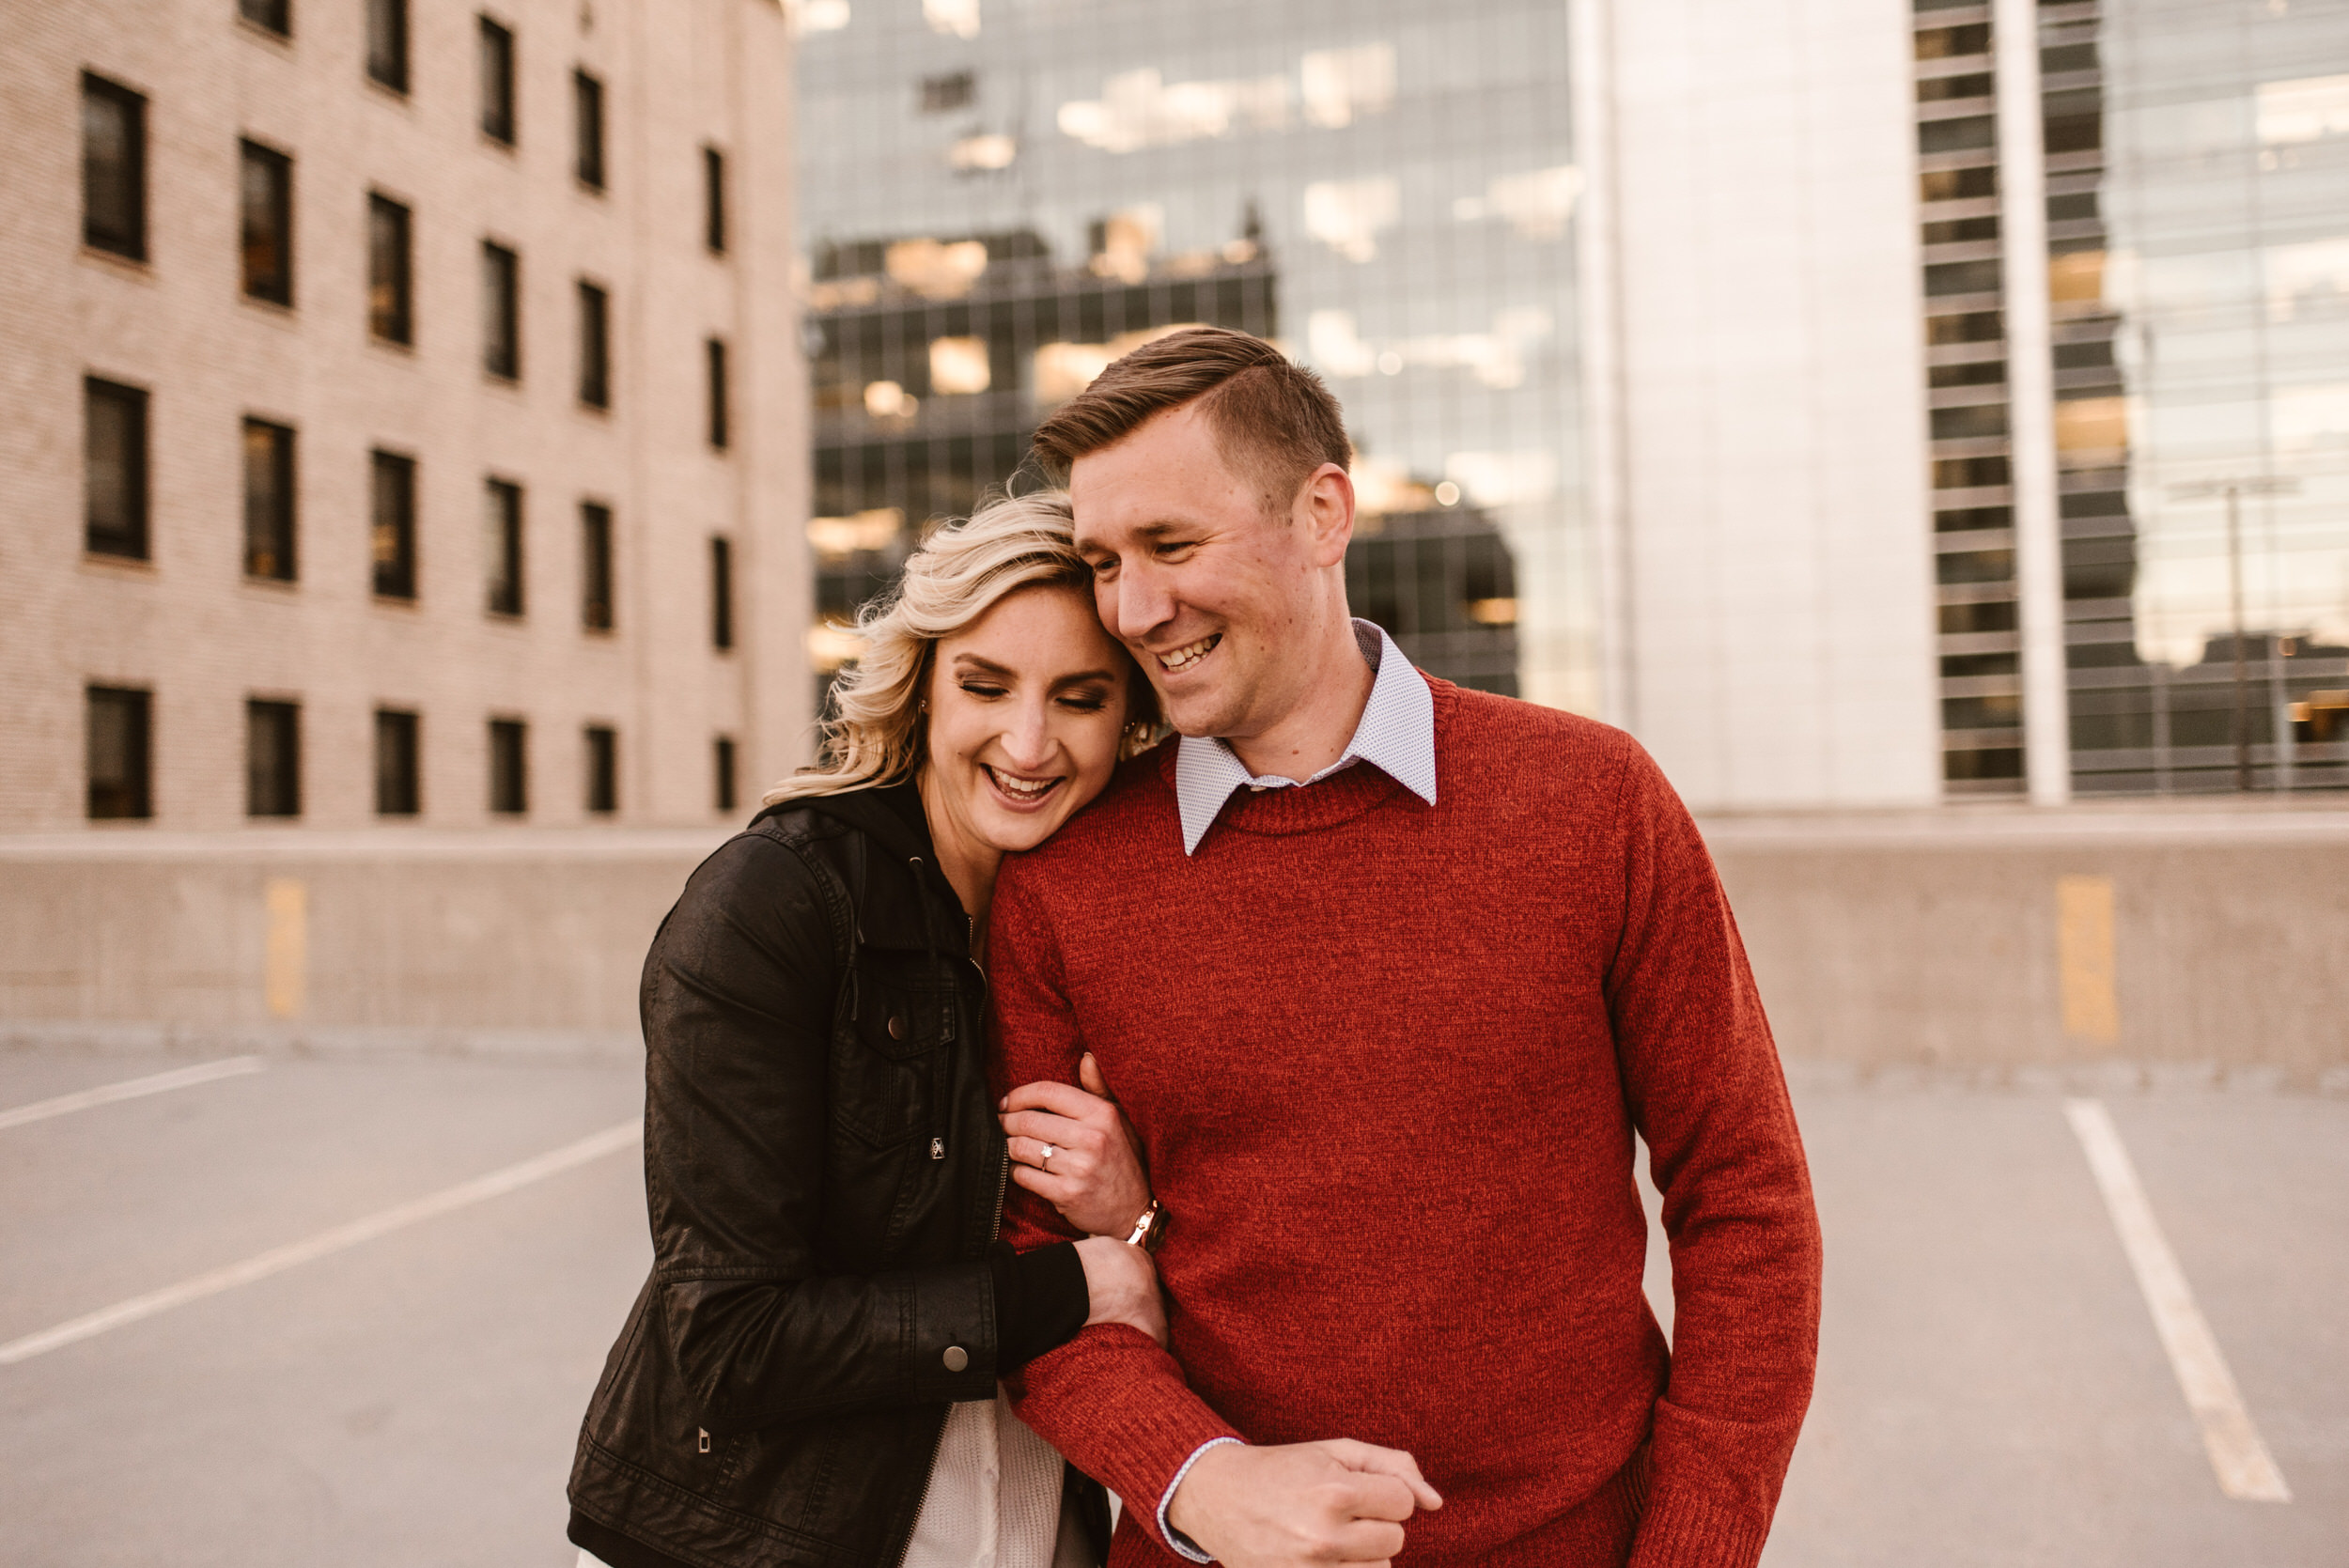 Gene Leahy Mall Omaha Engagement Session Kaylie Sirek Photography 33.jpg